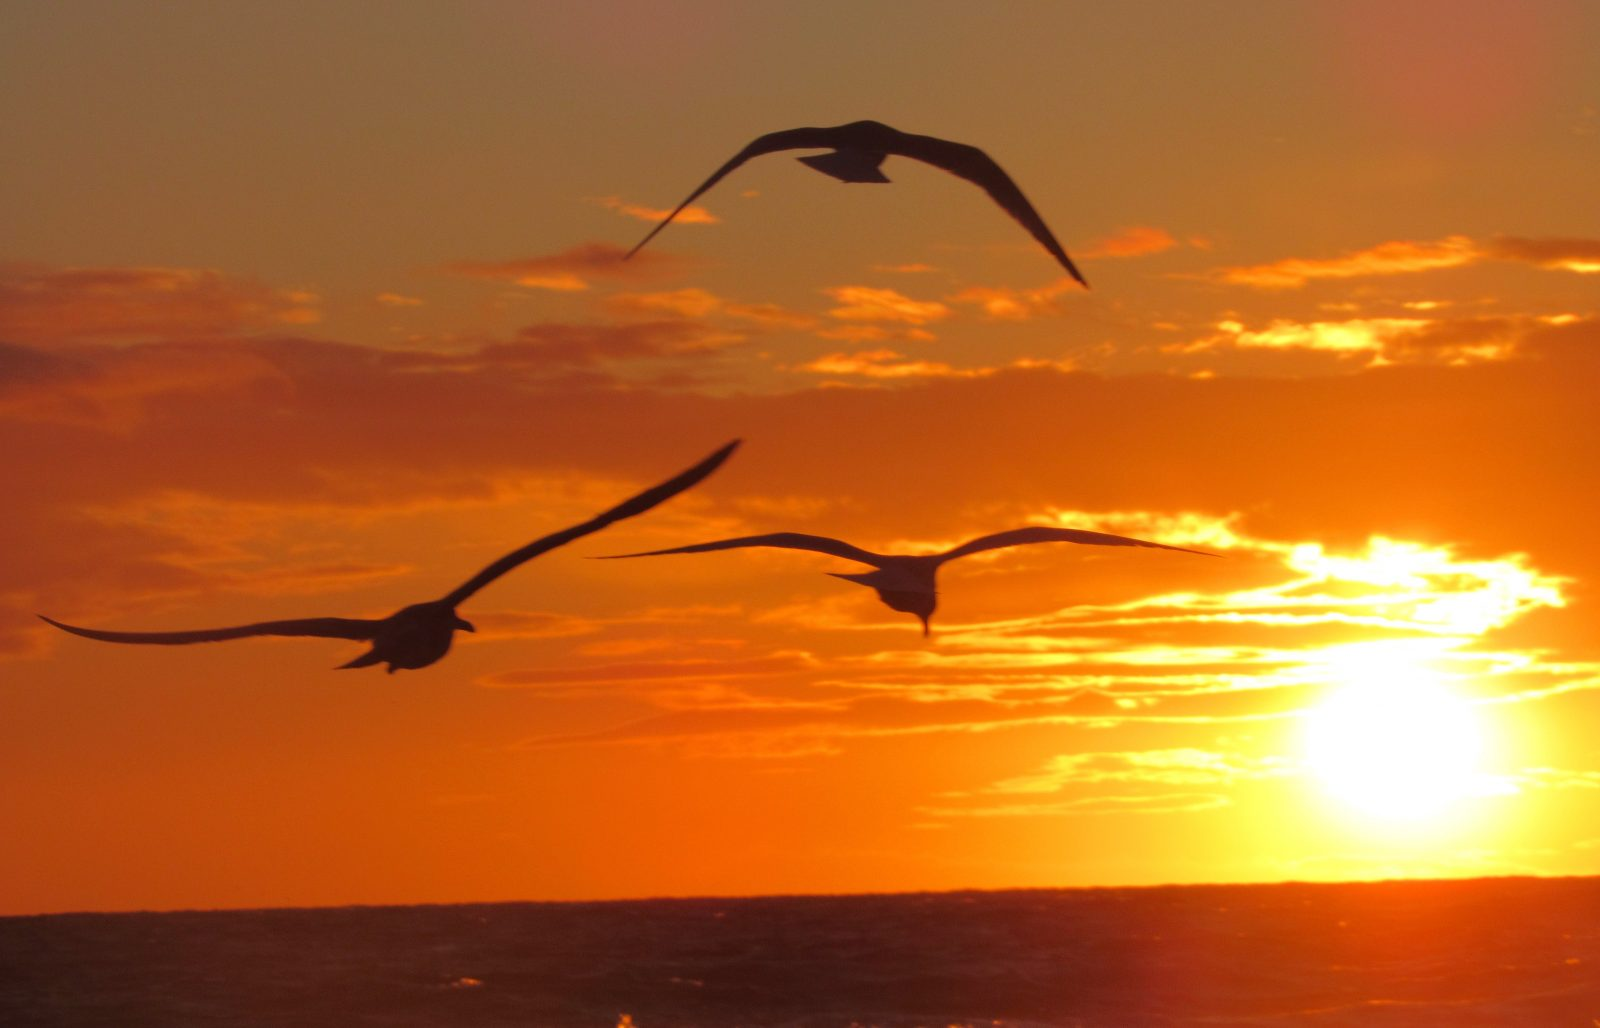 Seagals flying into the sunset